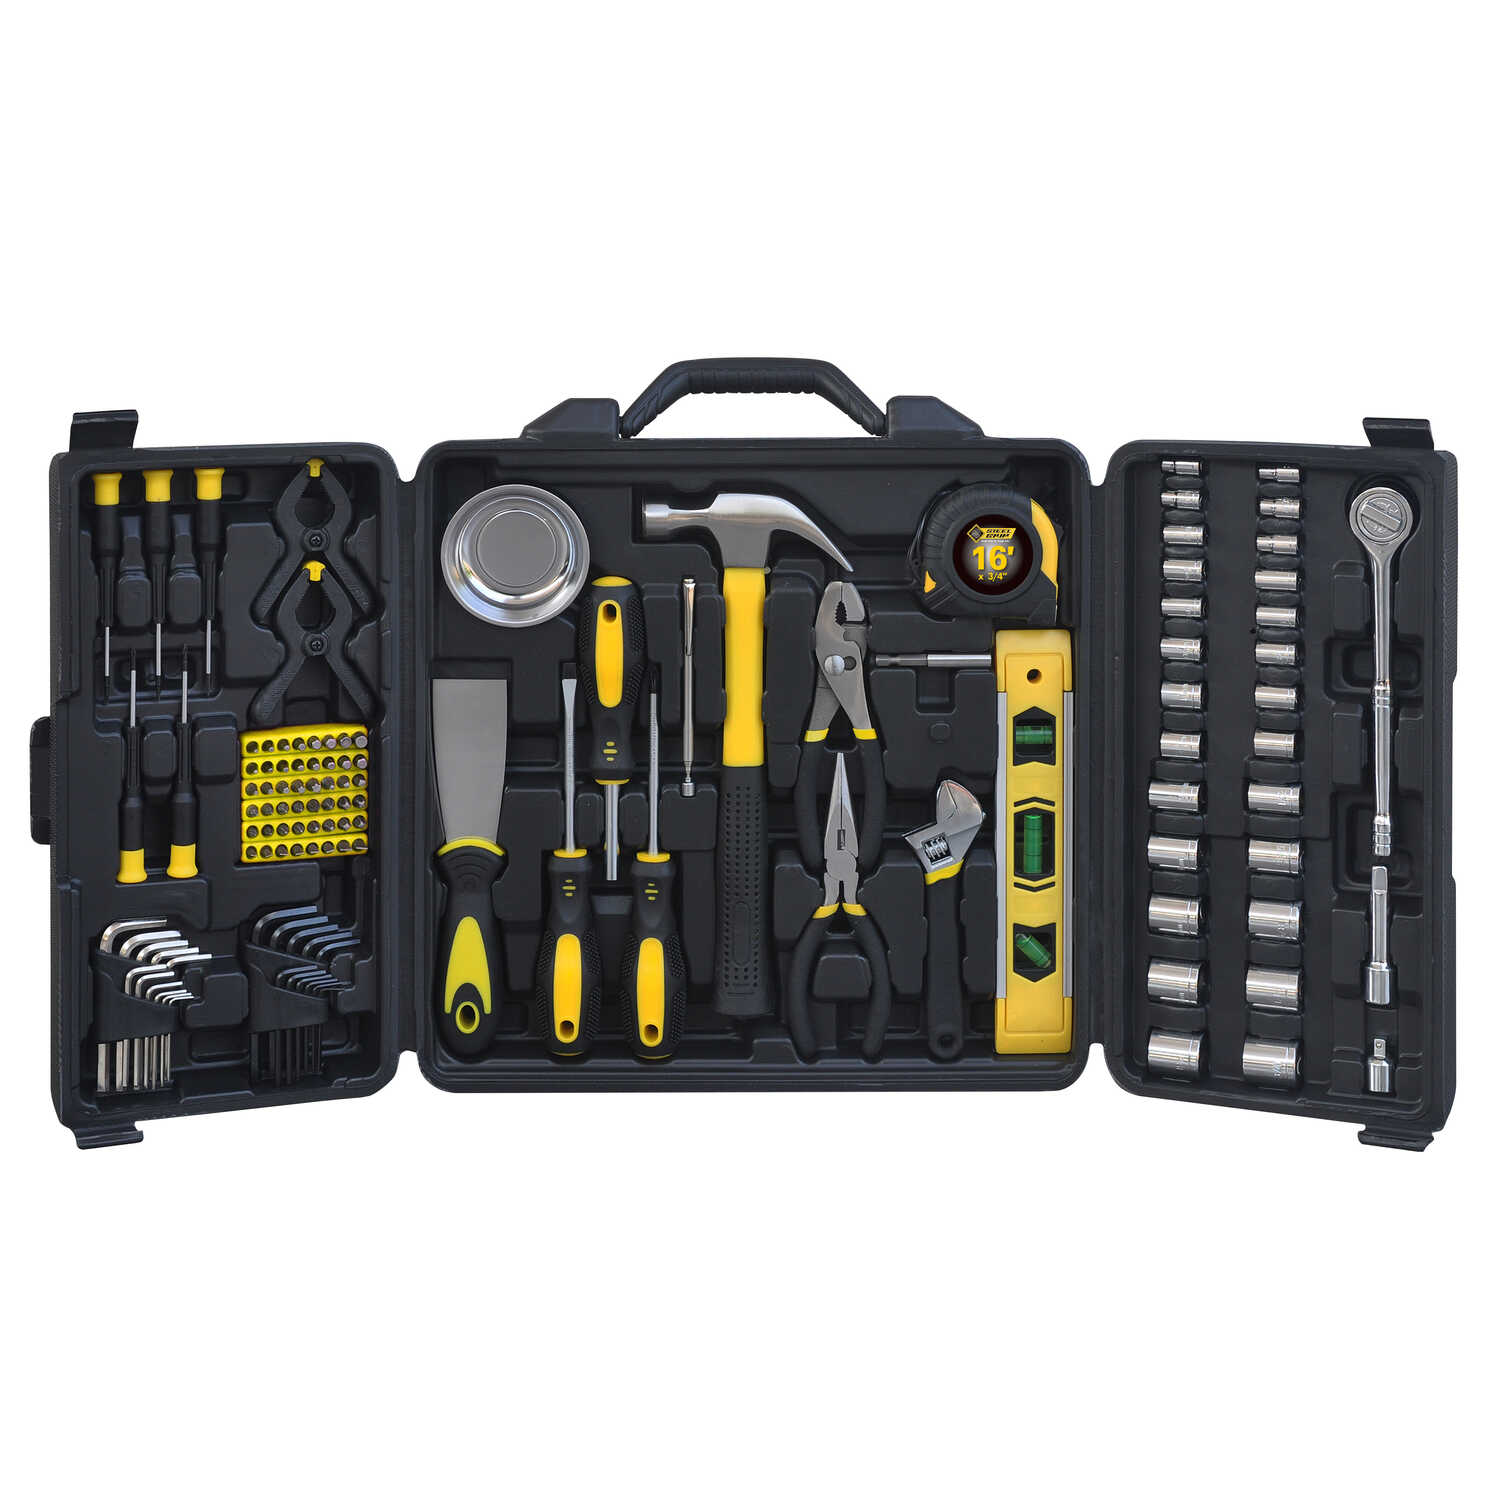 Steel Grip  1-1/4 in.  x 1/4, 3/8 and 1/2 in.  Metric and SAE  6  Socket and Tool Set  120 pc.